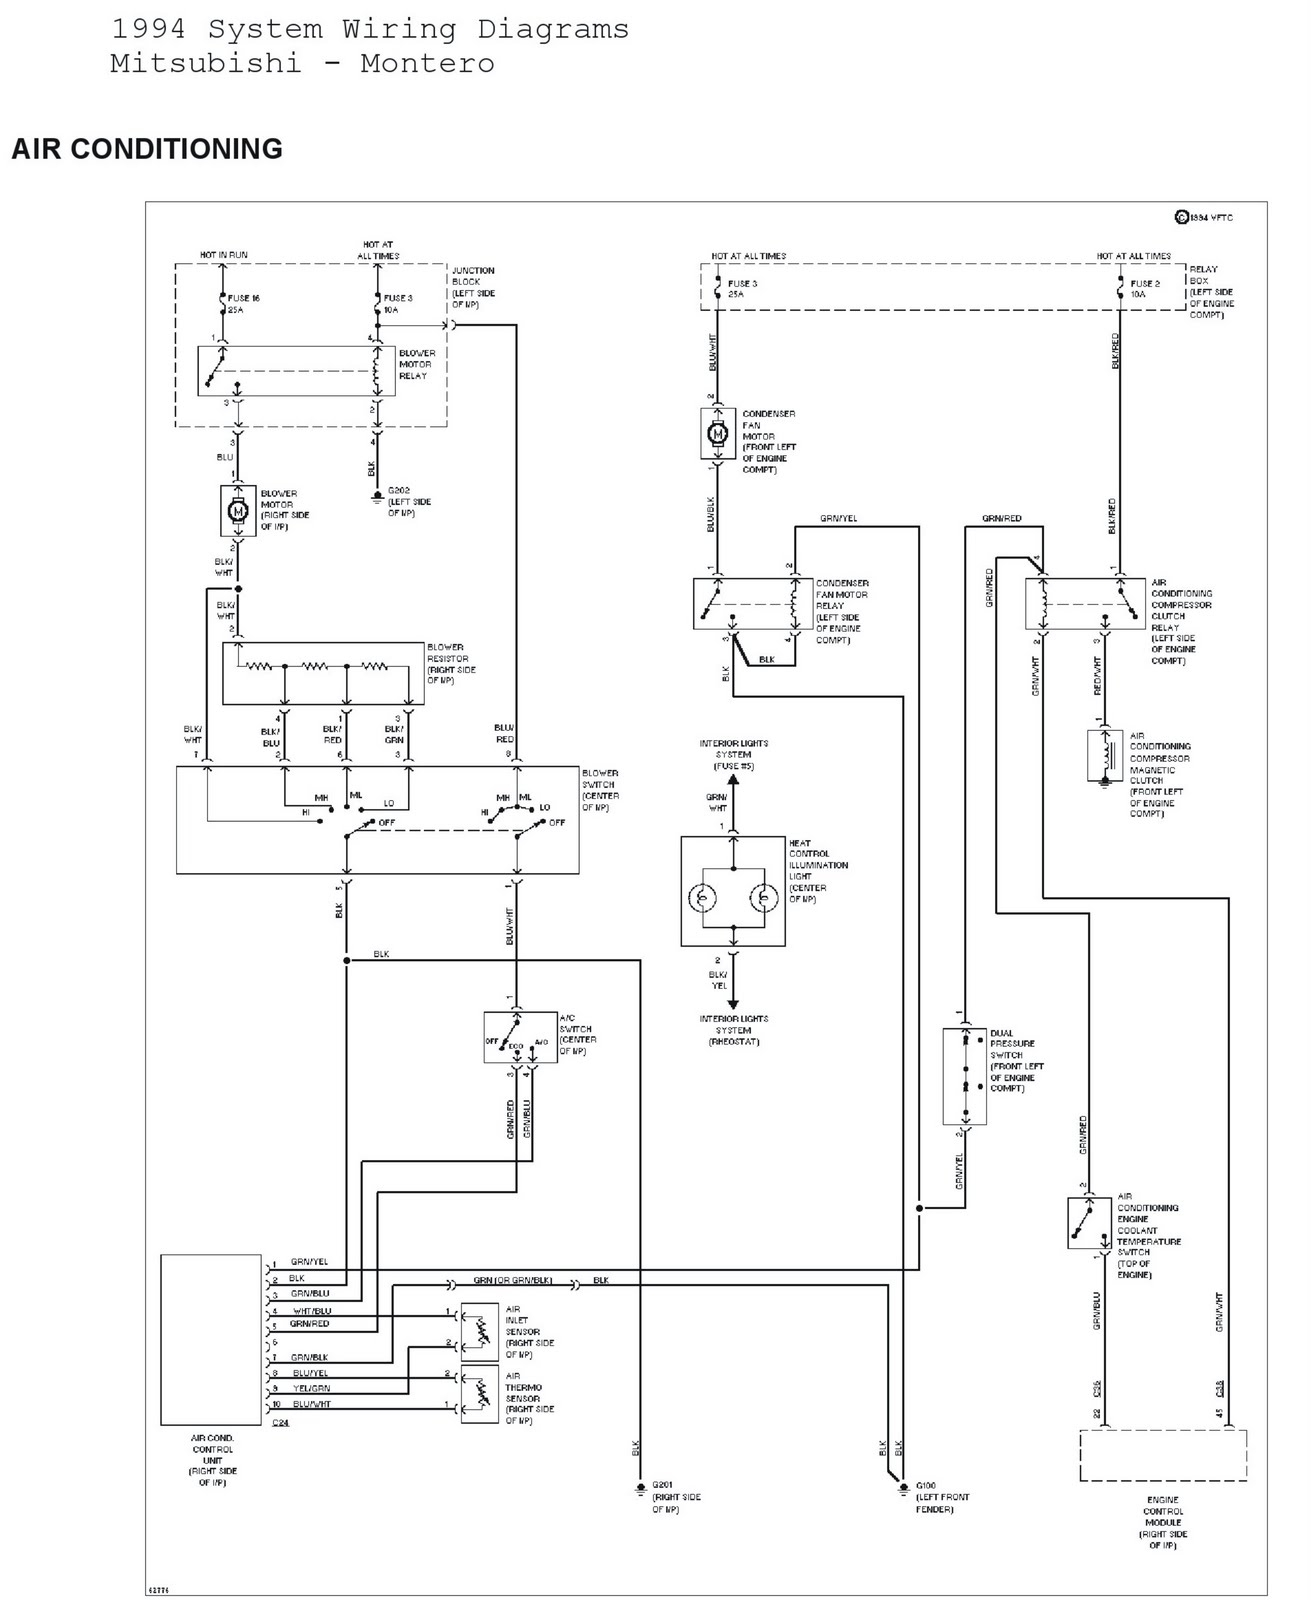 1994 Mitsubishi Montero System Wiring Diagrams Air Conditioning